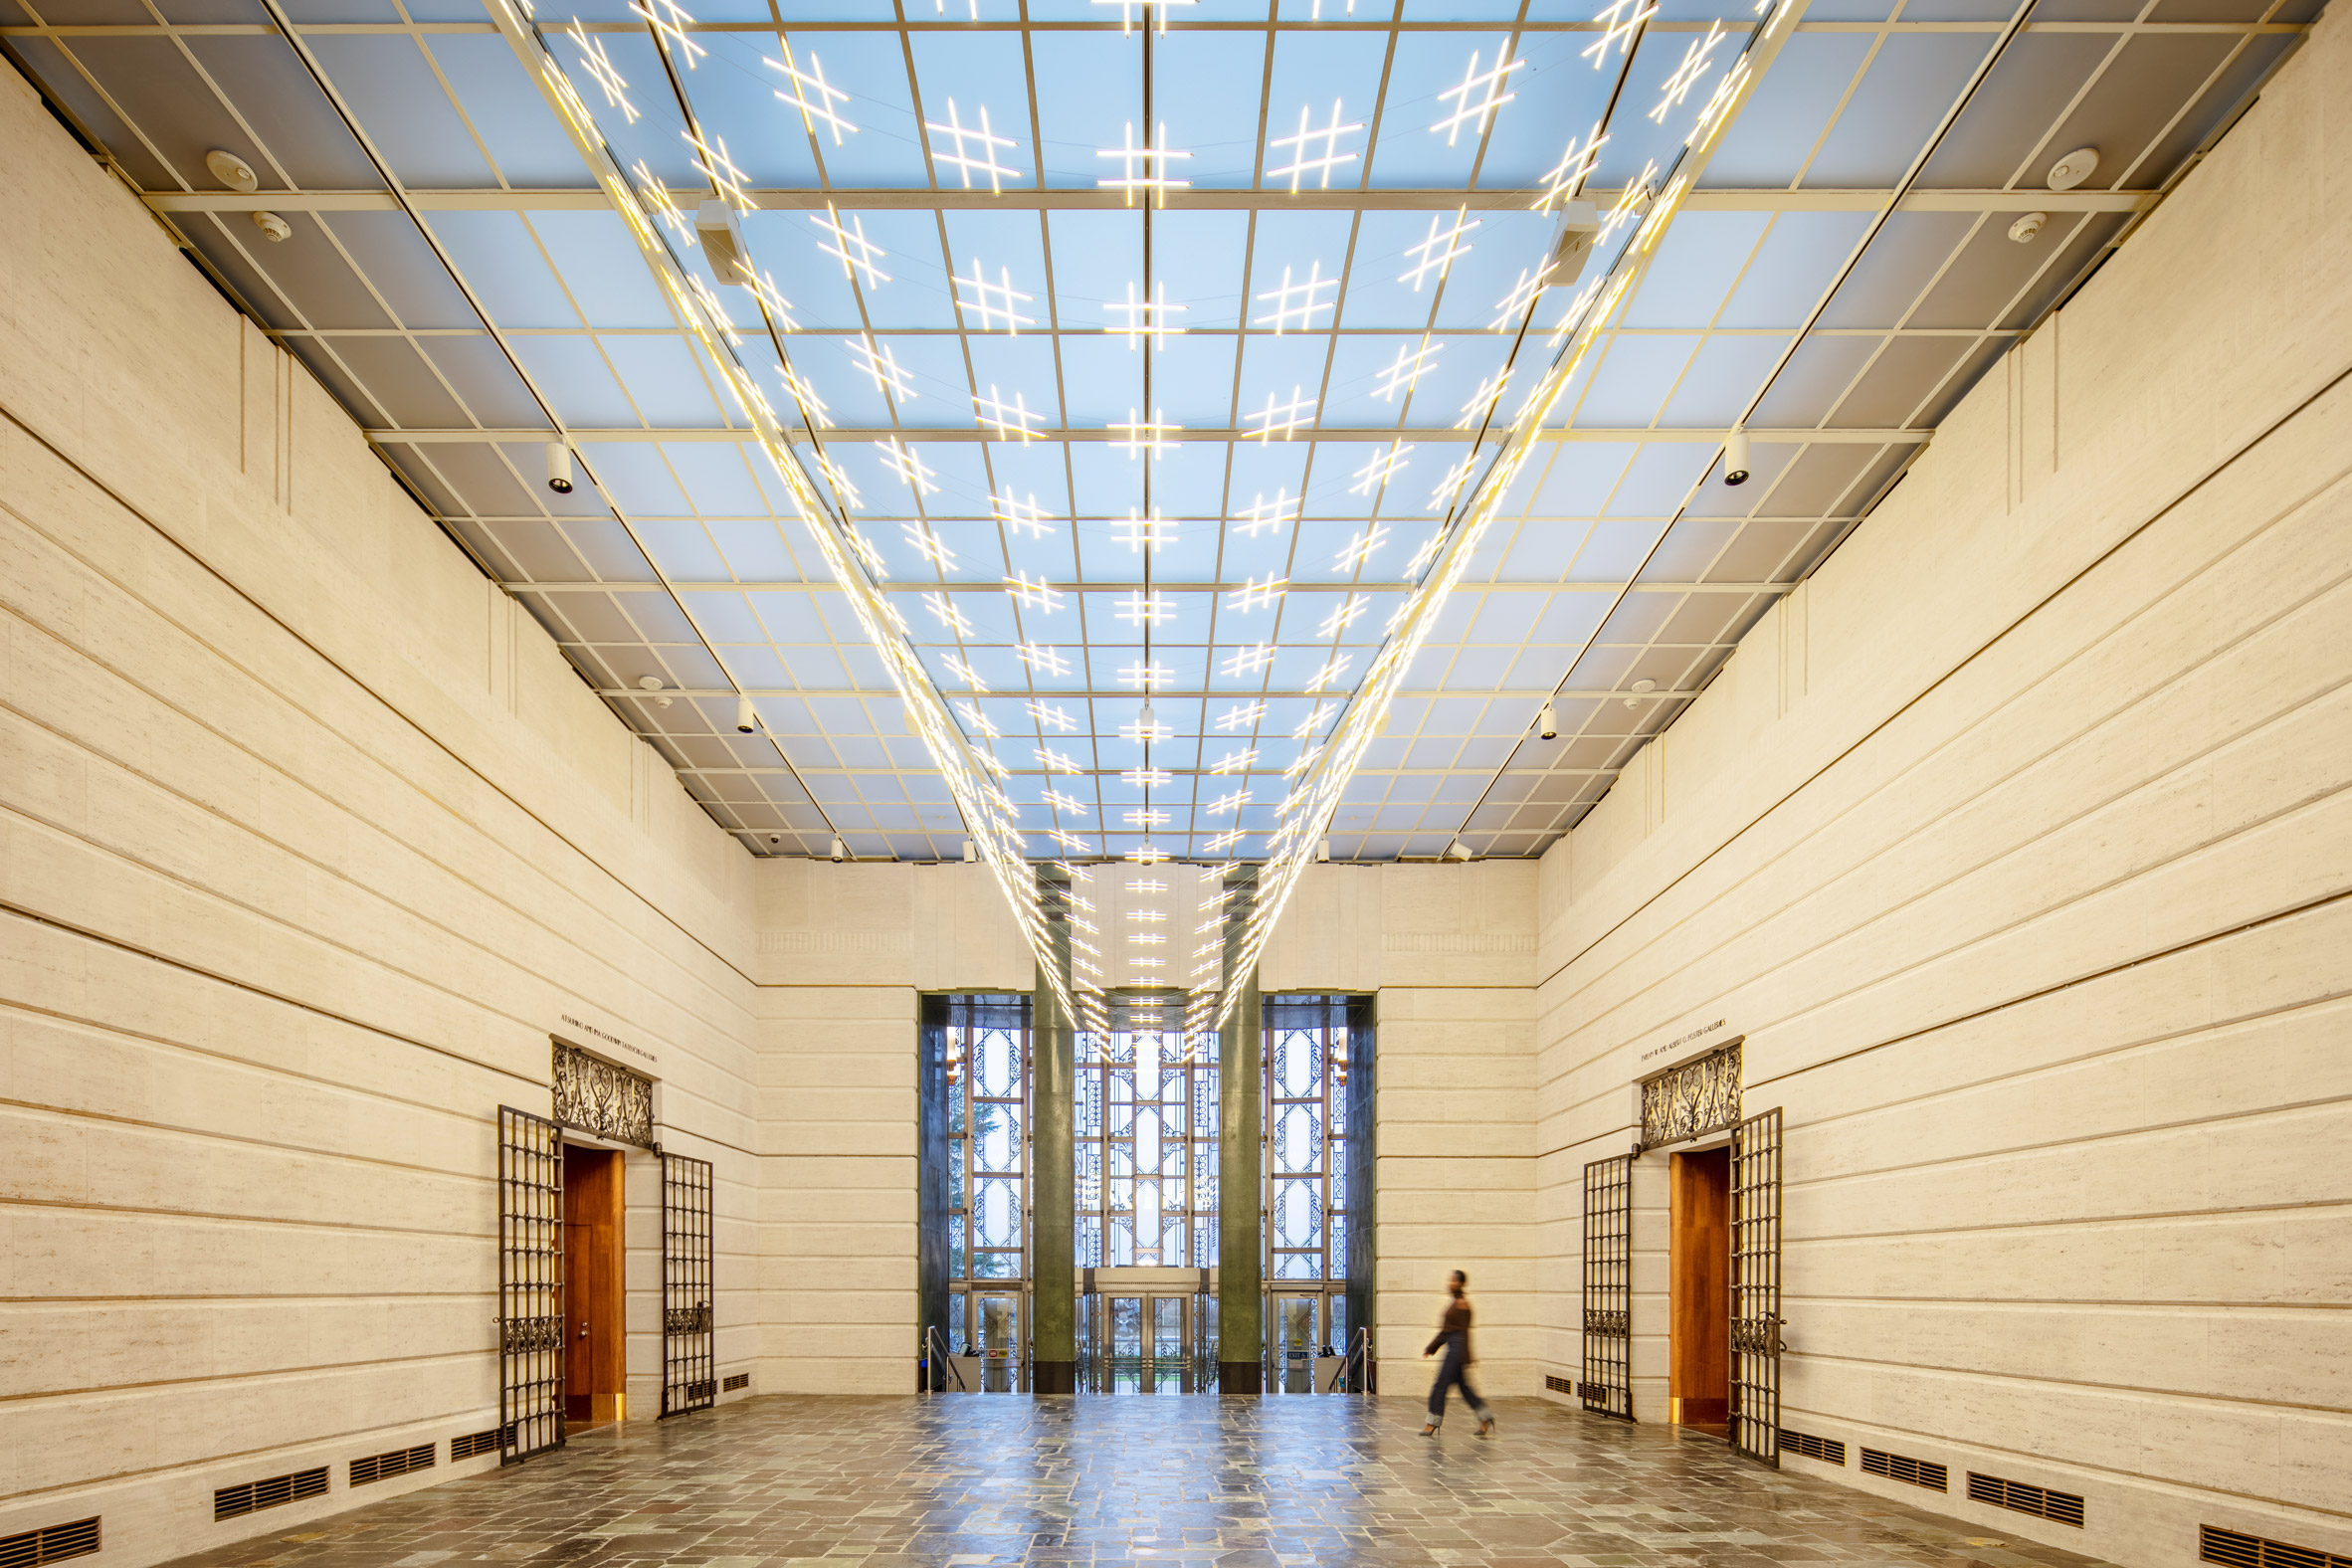 Seattle Asian Art Museum by LMN Architects